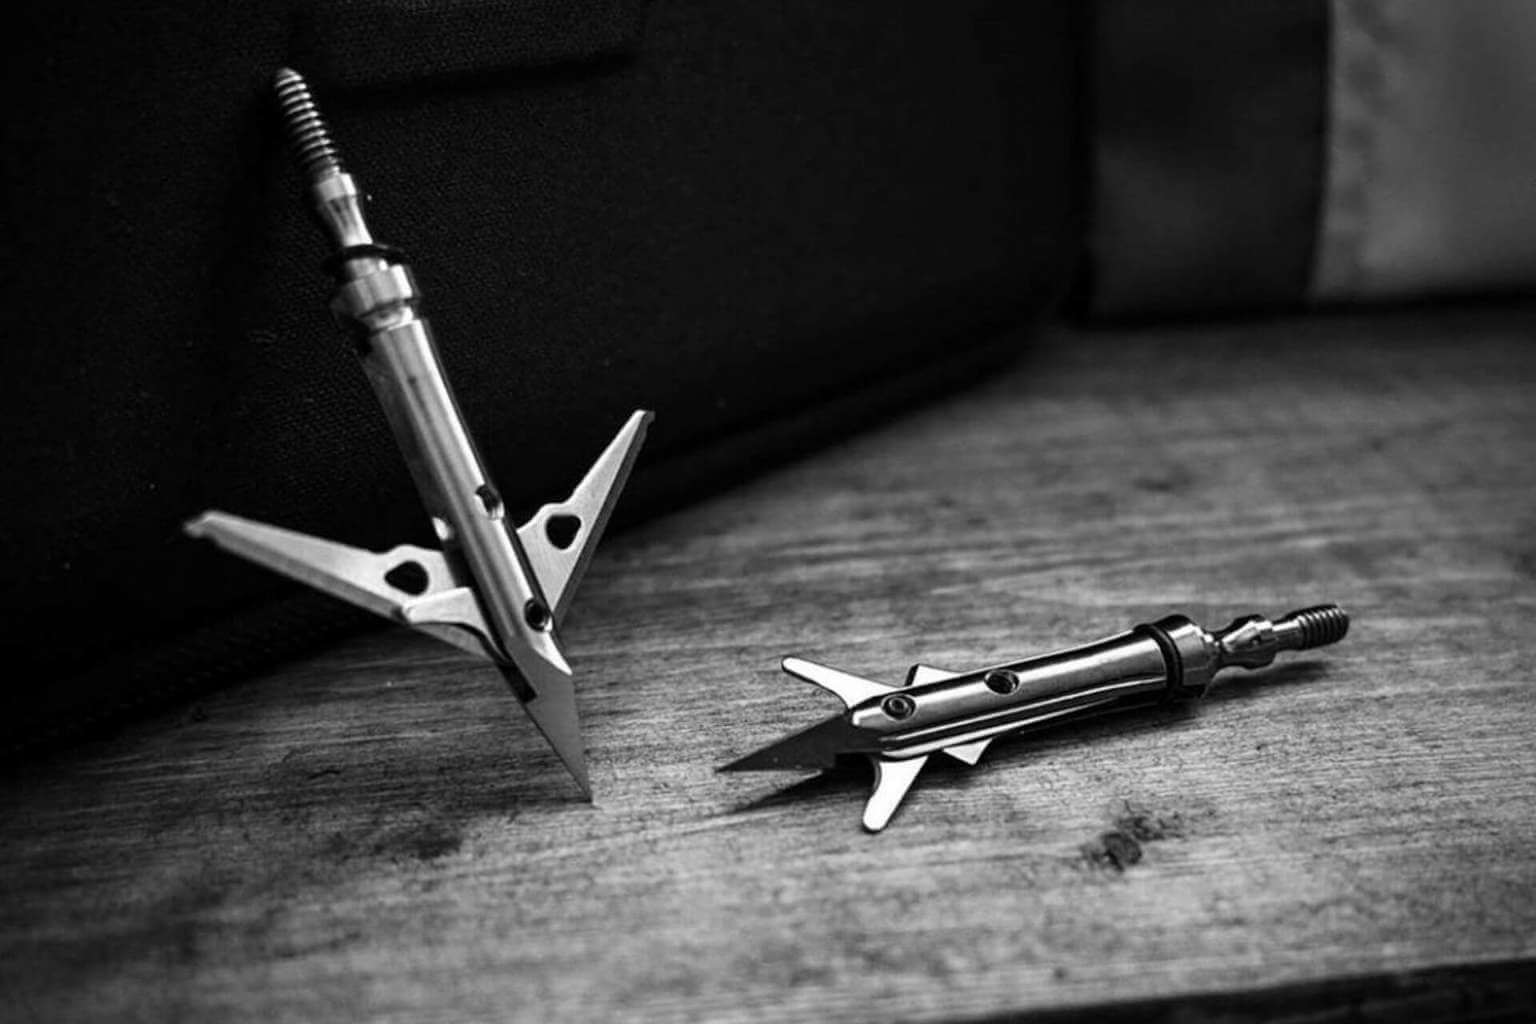 New Mechanical and Hybrid Broadheads for Crossbows in 2021